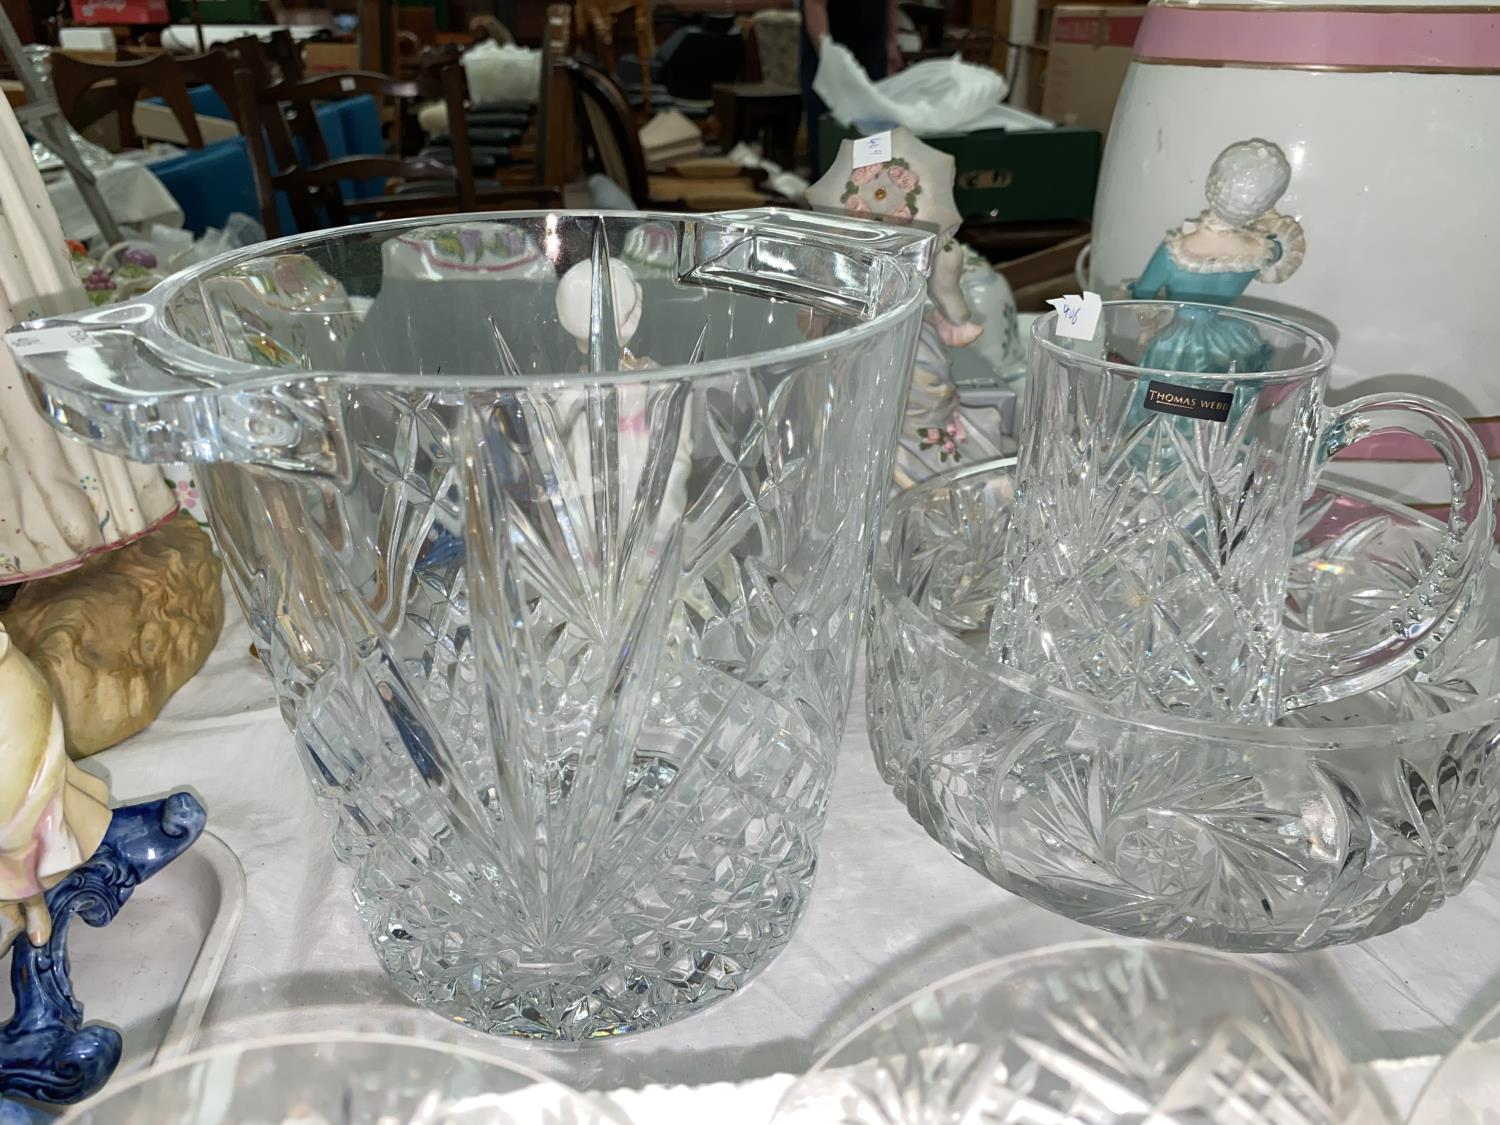 An Edinburgh Crystal set of 6 goblets, boxed; 6 cut saucer champagnes; glassware - Image 3 of 3